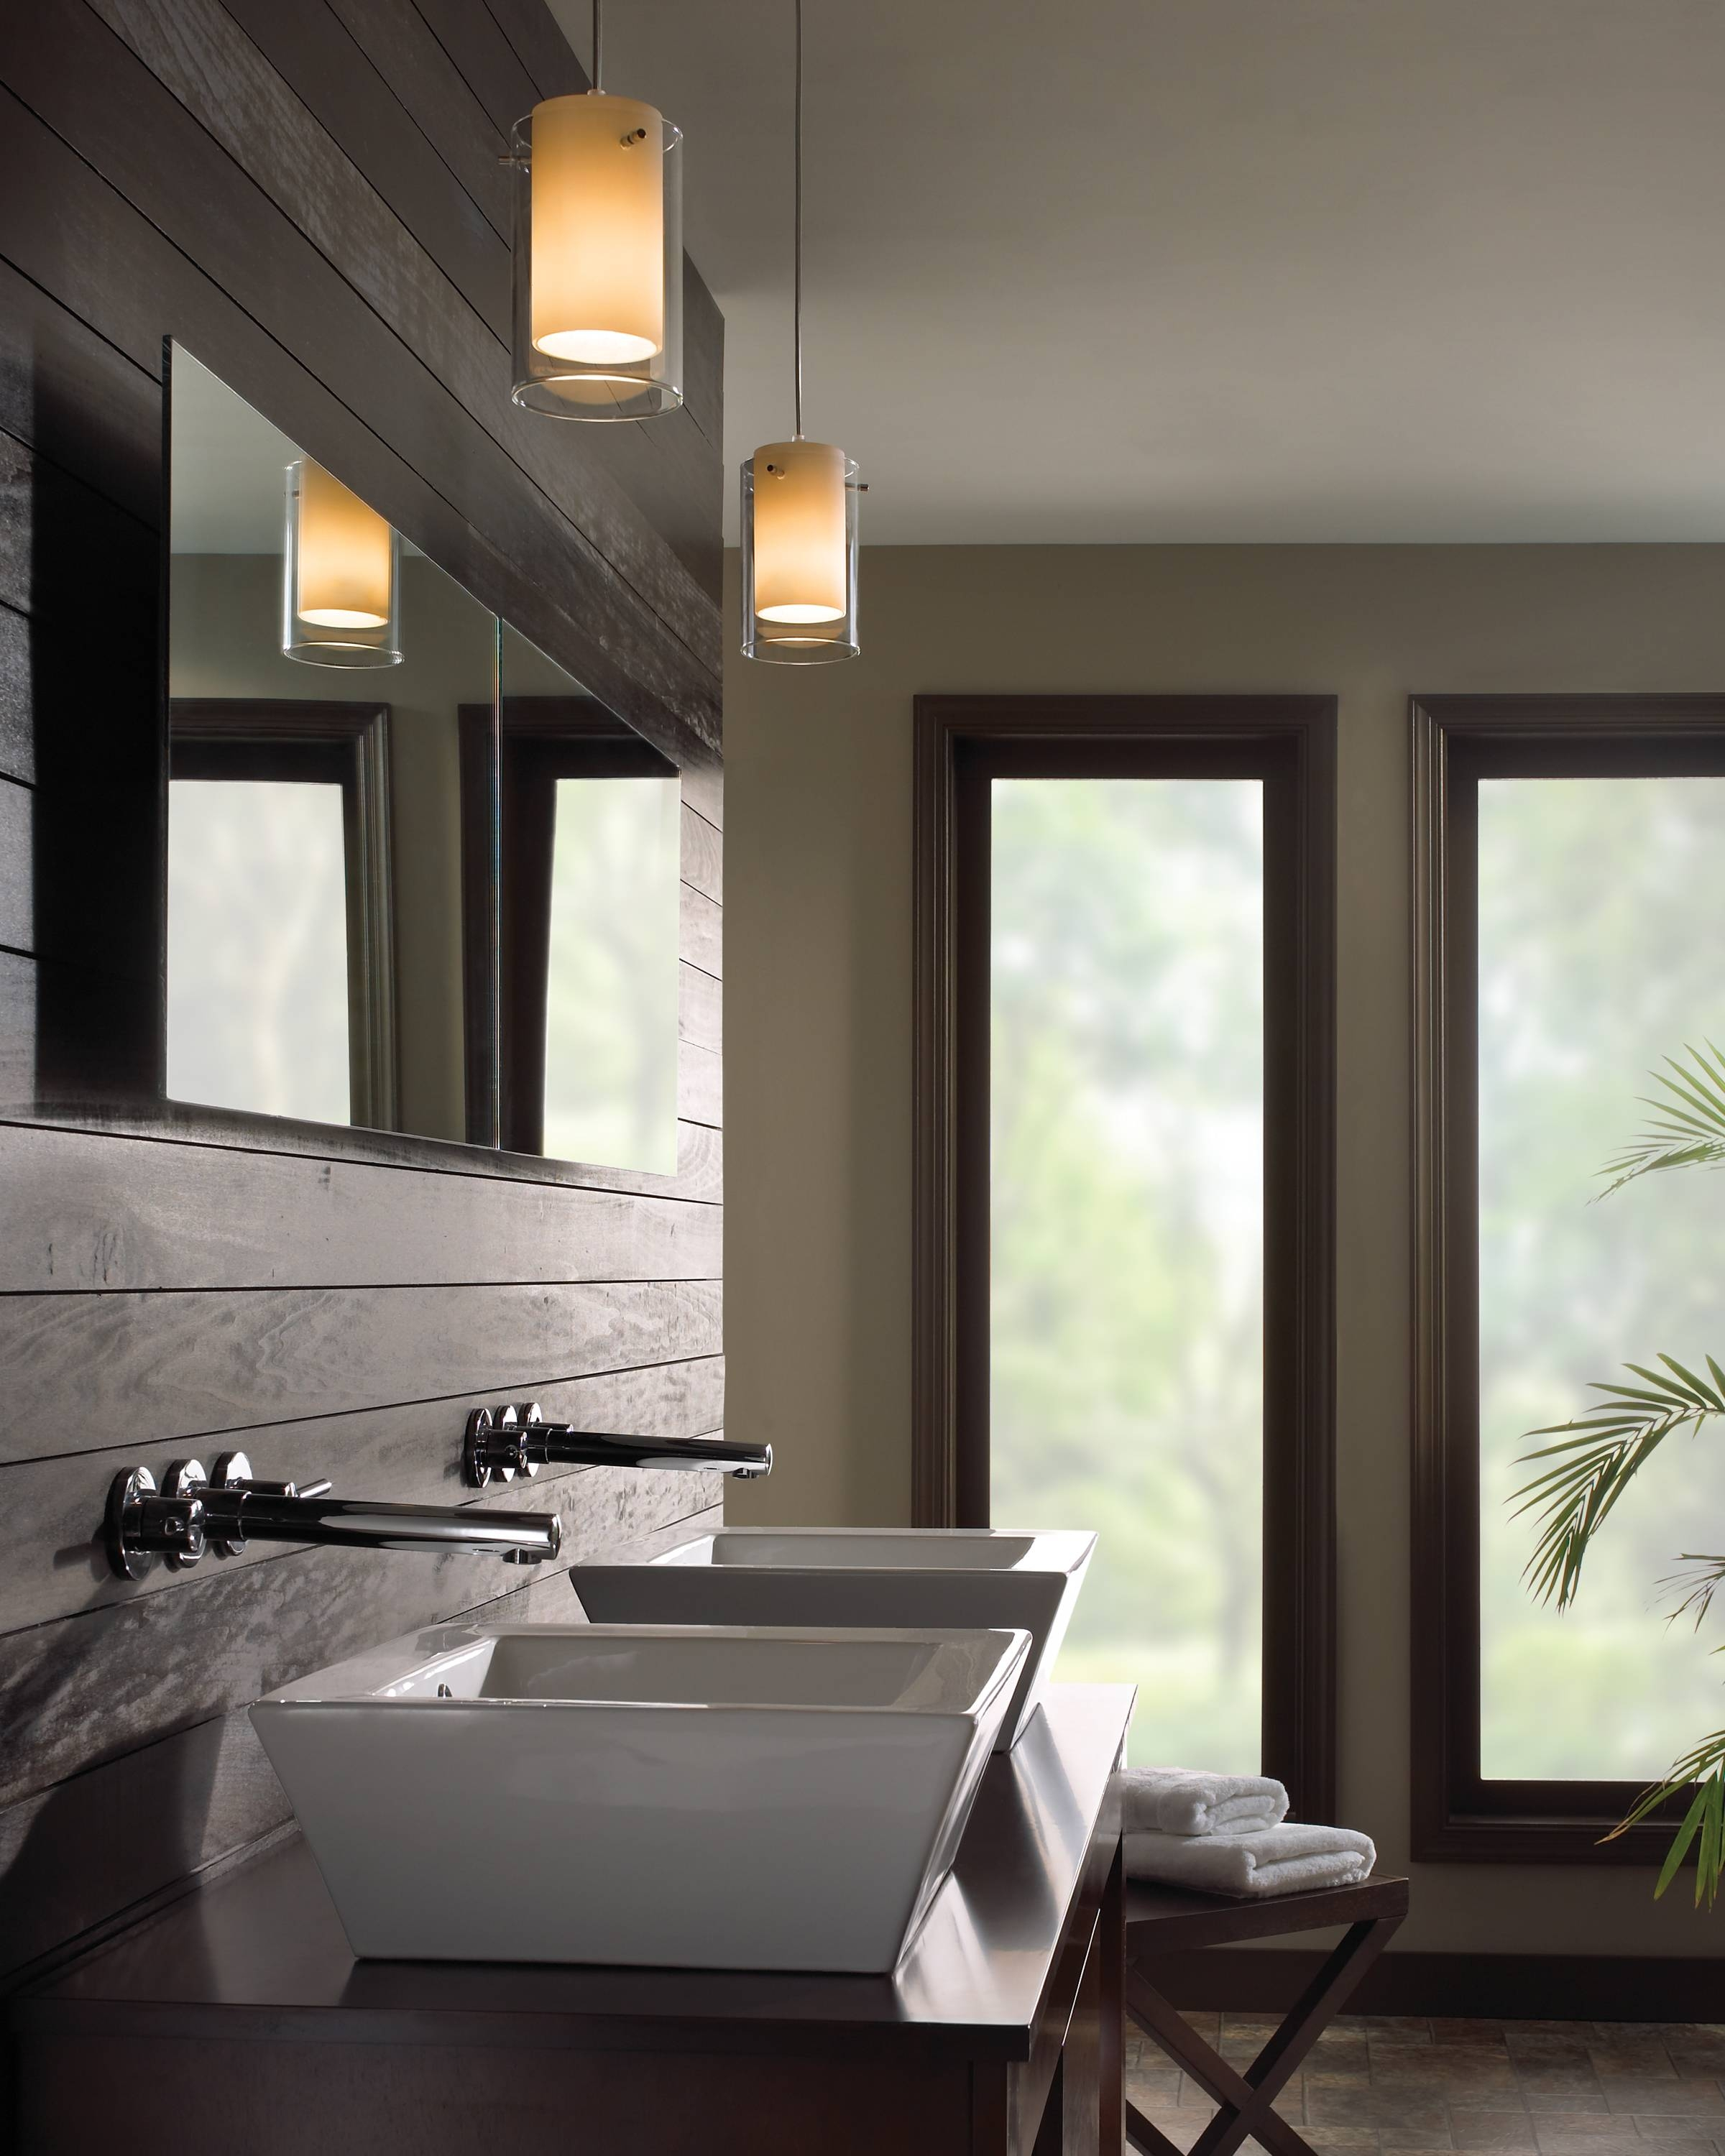 Awesome Pendant Lighting For Bathrooms 41 For Your Mini Pendant intended for Mini Pendant Lights For Bathroom (Image 1 of 15)